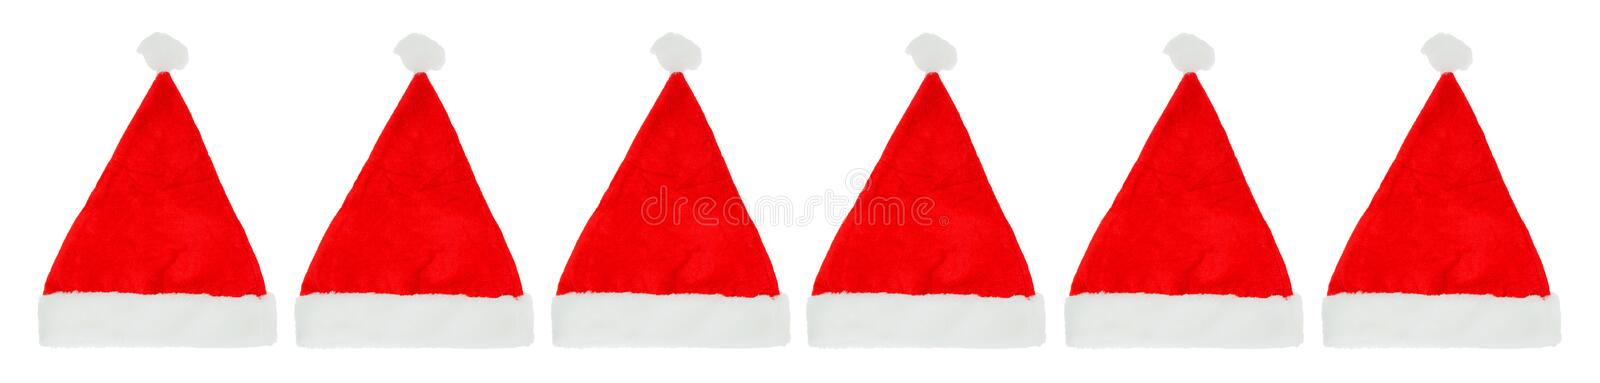 Row of Christmas Santa hats. Several red and white Christmas Santa hats in a long row royalty free stock images